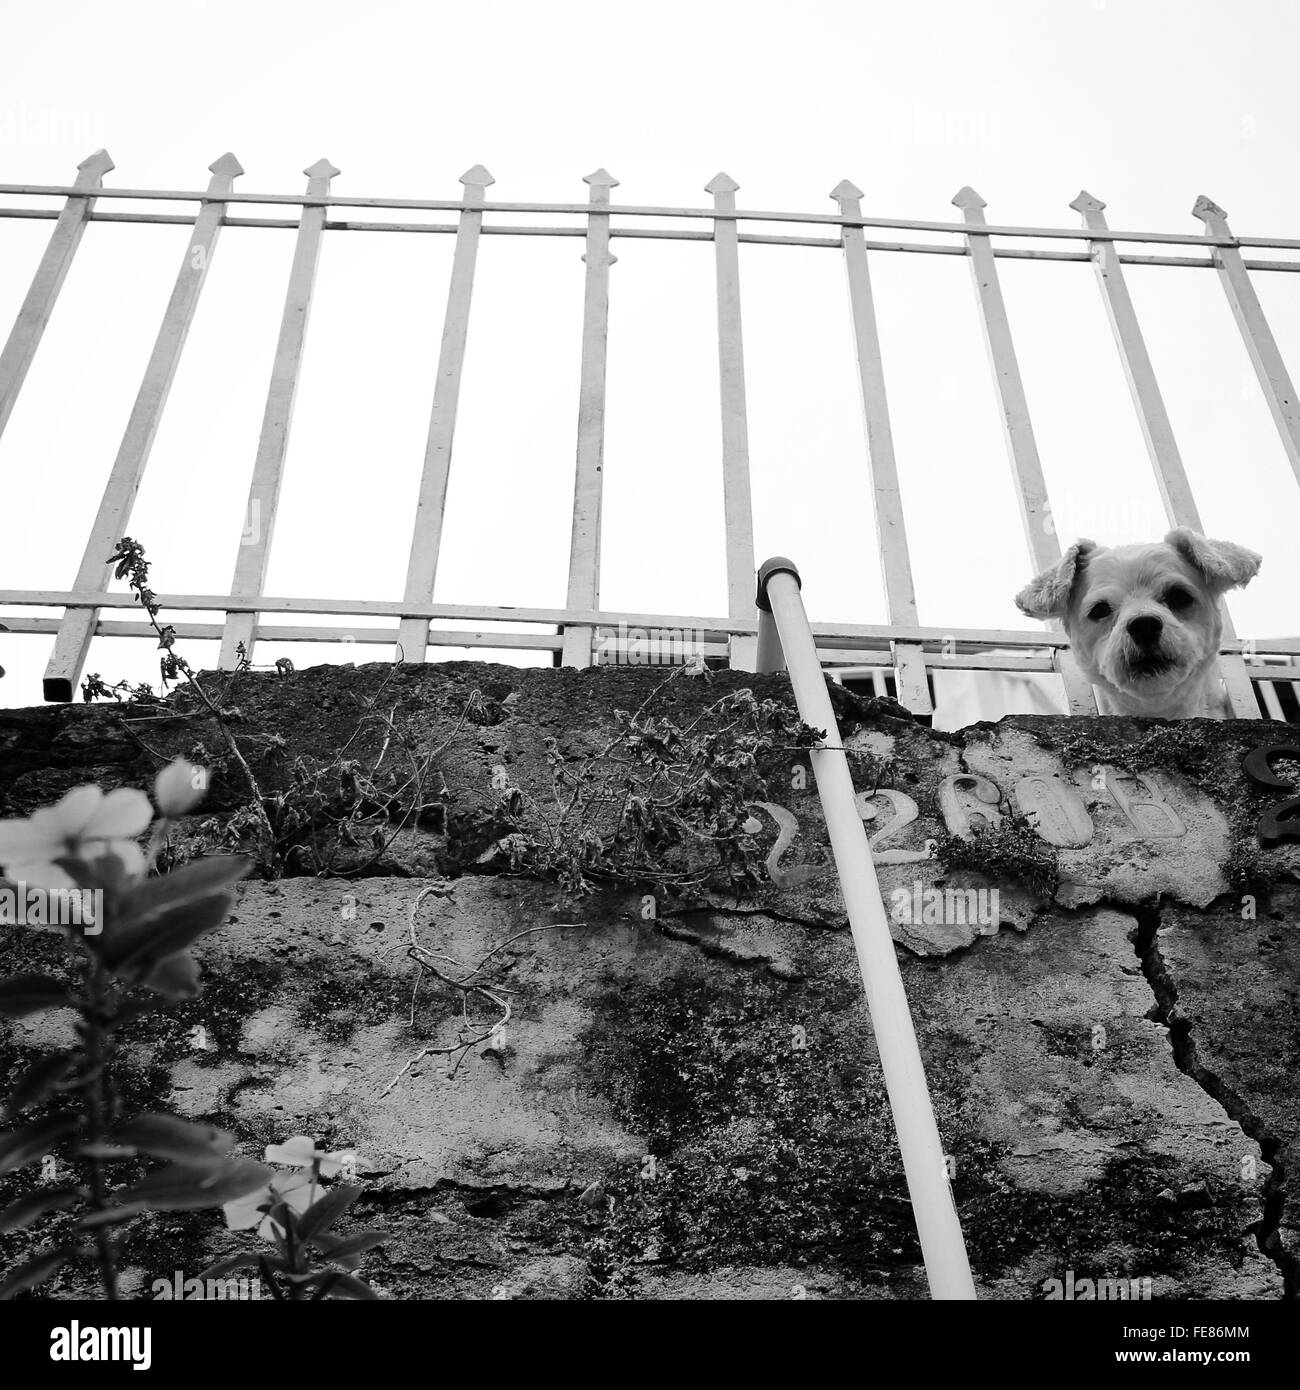 Low Angle View Of Curious White Puppy Peeking In Fence - Stock Image